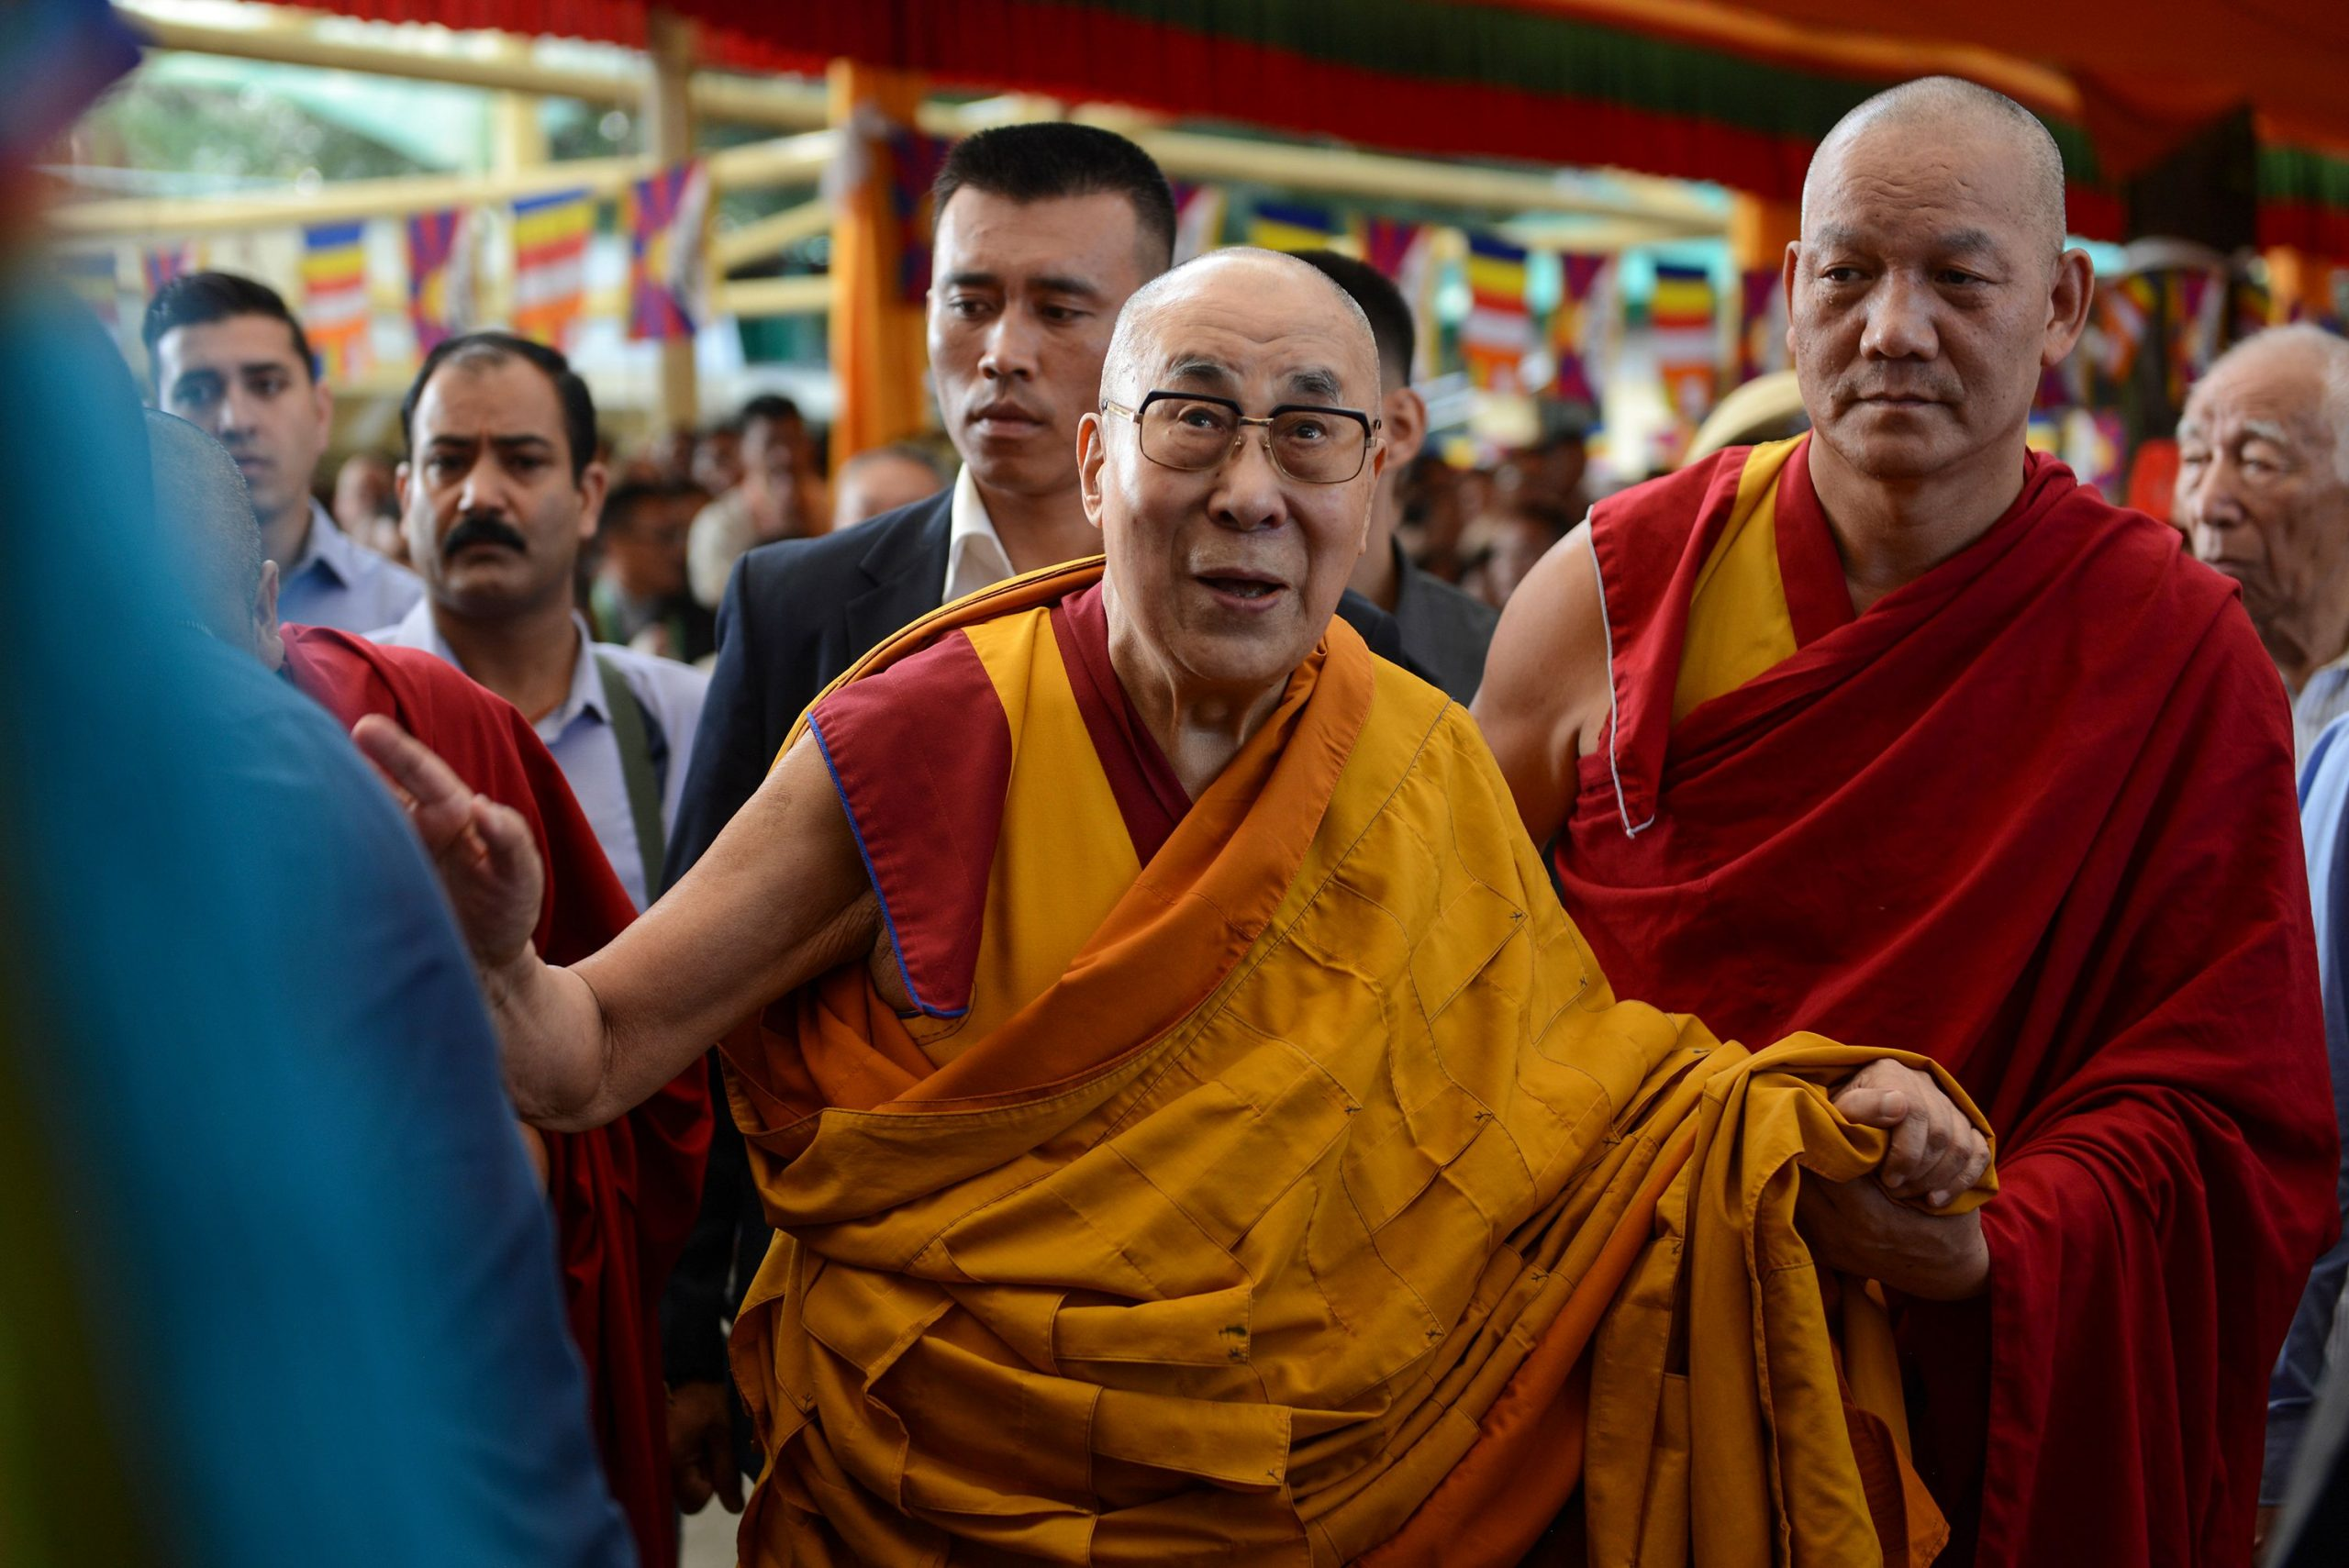 Tibetan spiritual leader the Dalai Lama (C) arrives for a long-life prayer offering dedicated to him at Tsuglagkhang Temple in McLeod Ganj on September 13, 2019. (Photo by Lobsang Wangyal / AFP) (Photo by LOBSANG WANGYAL/AFP via Getty Images)